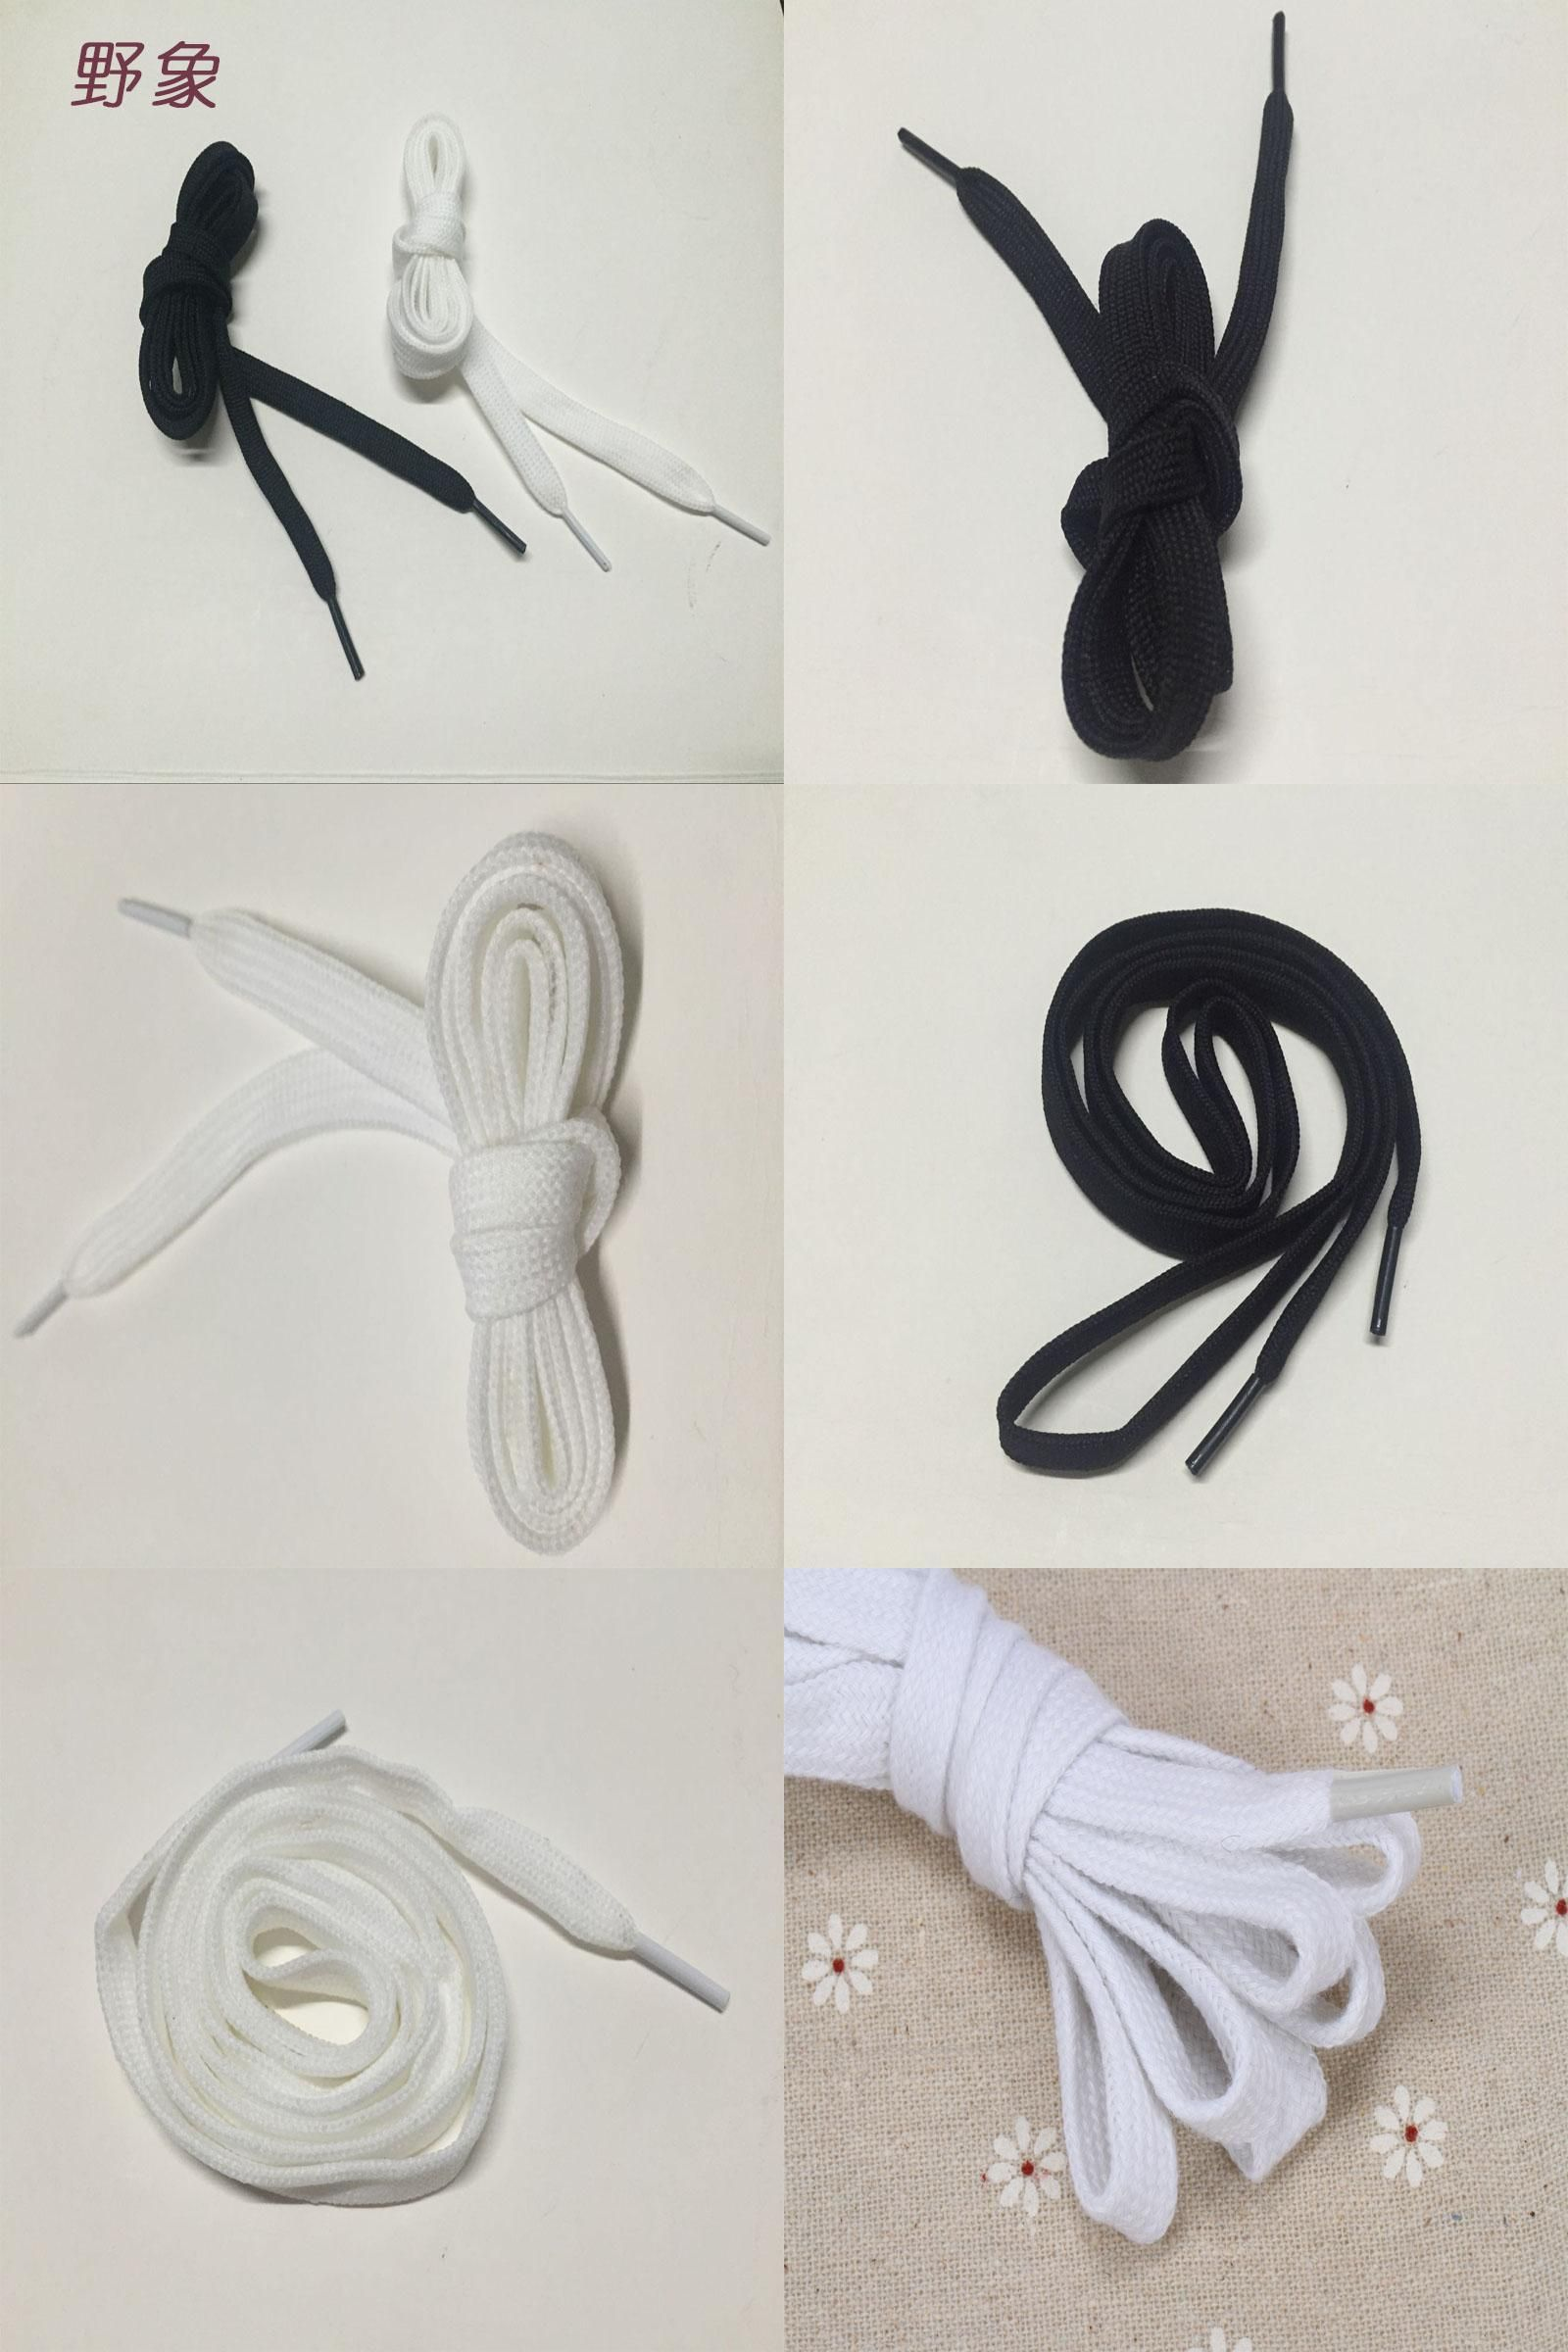 [Visit to Buy] sale by bulk new style shoe lace simple joker ultra boost